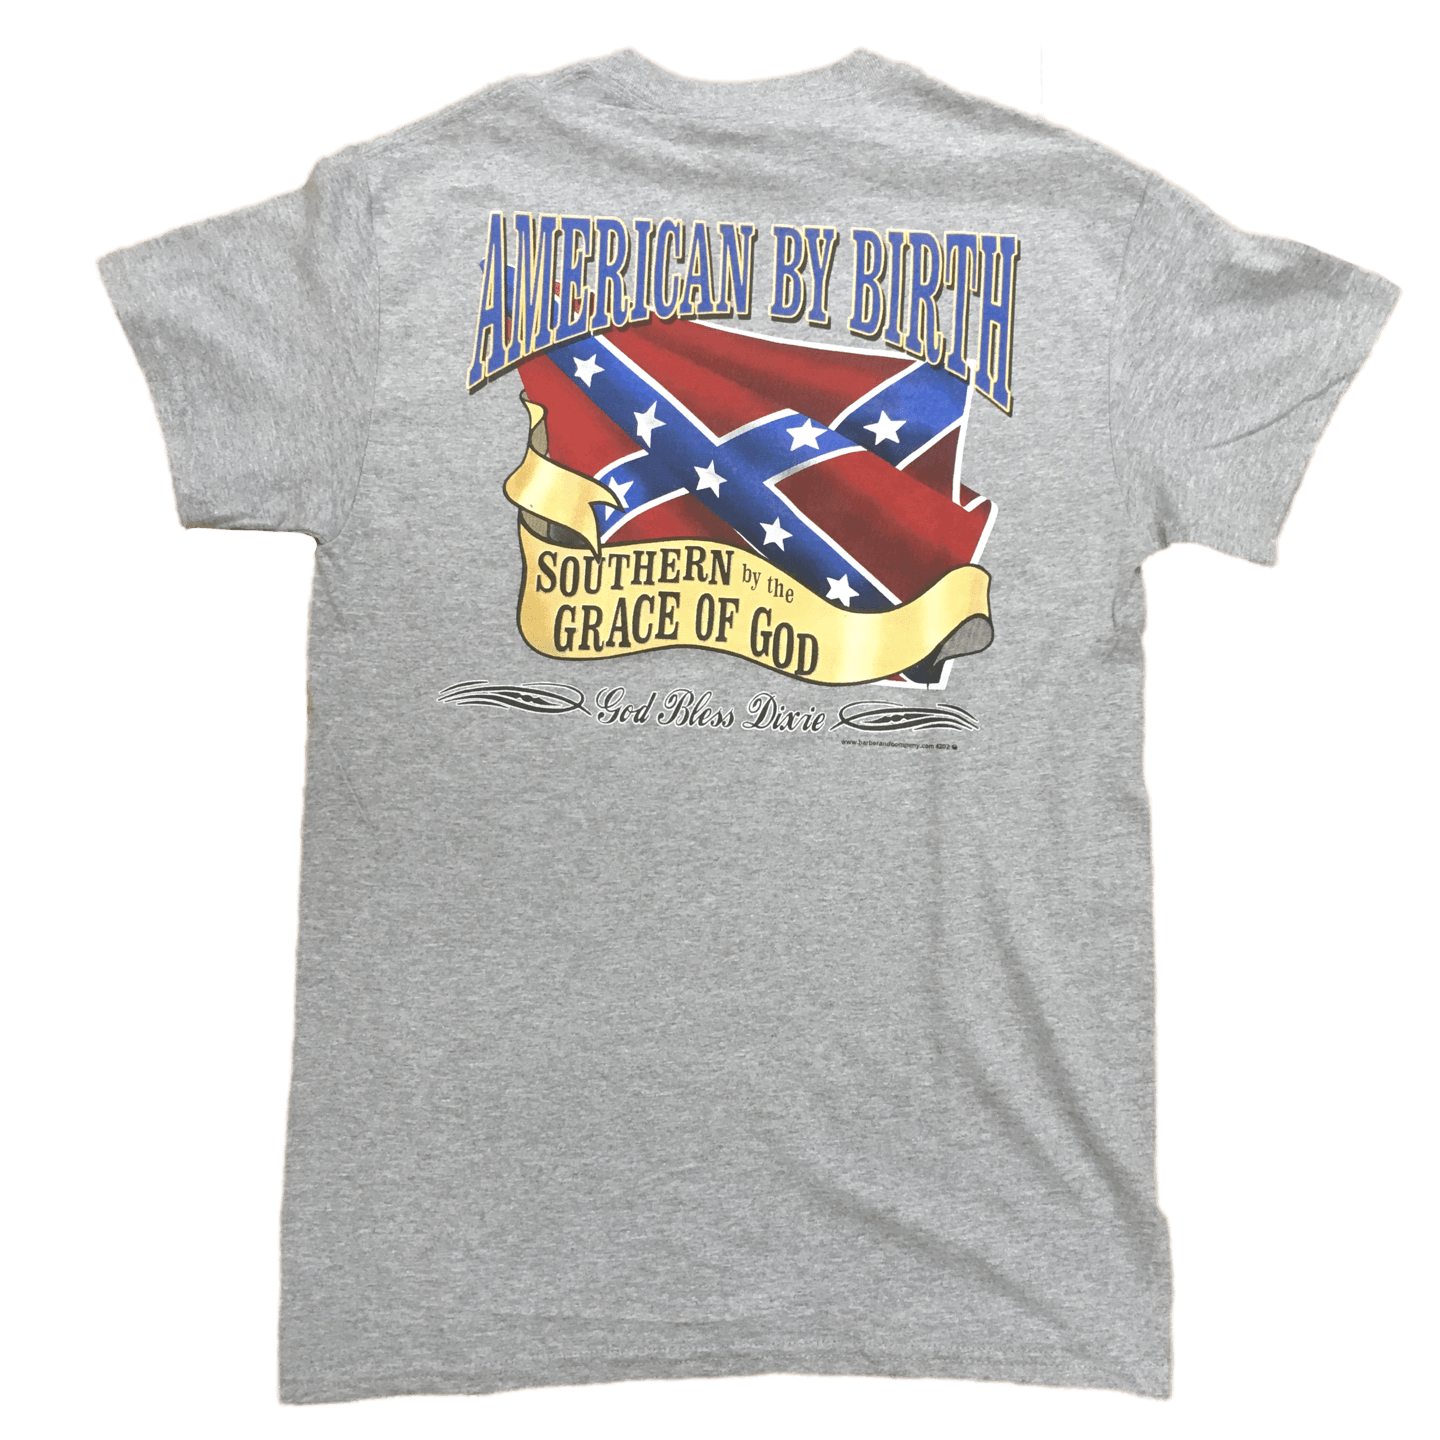 American by birth southern by the grace of god t shirtladies shirtthe dixie shop 14558163 pngv1536520699